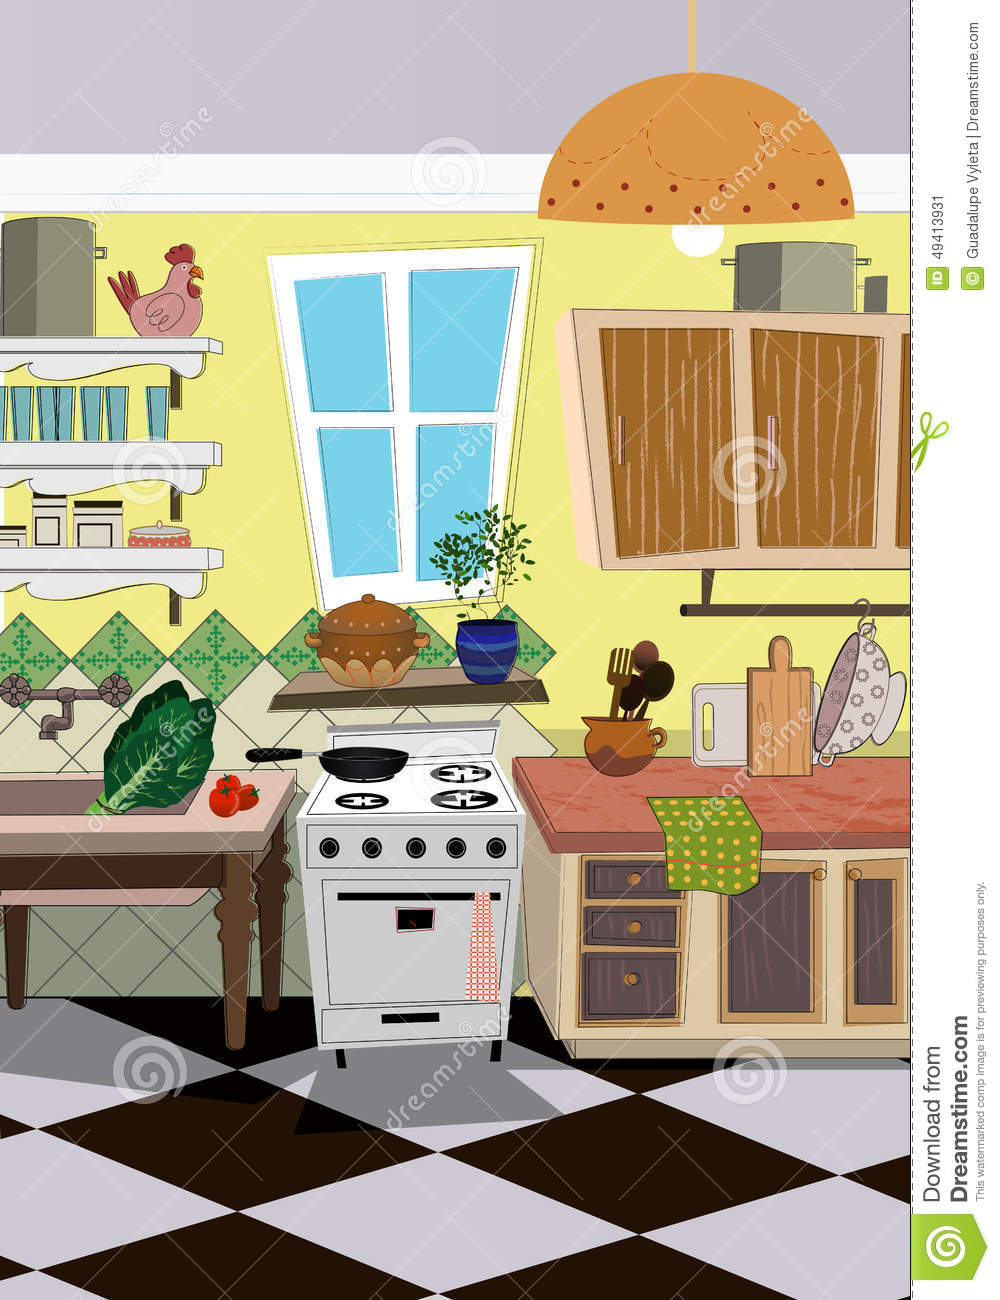 Kitchen Cartoon Style Background Stock Vector ...